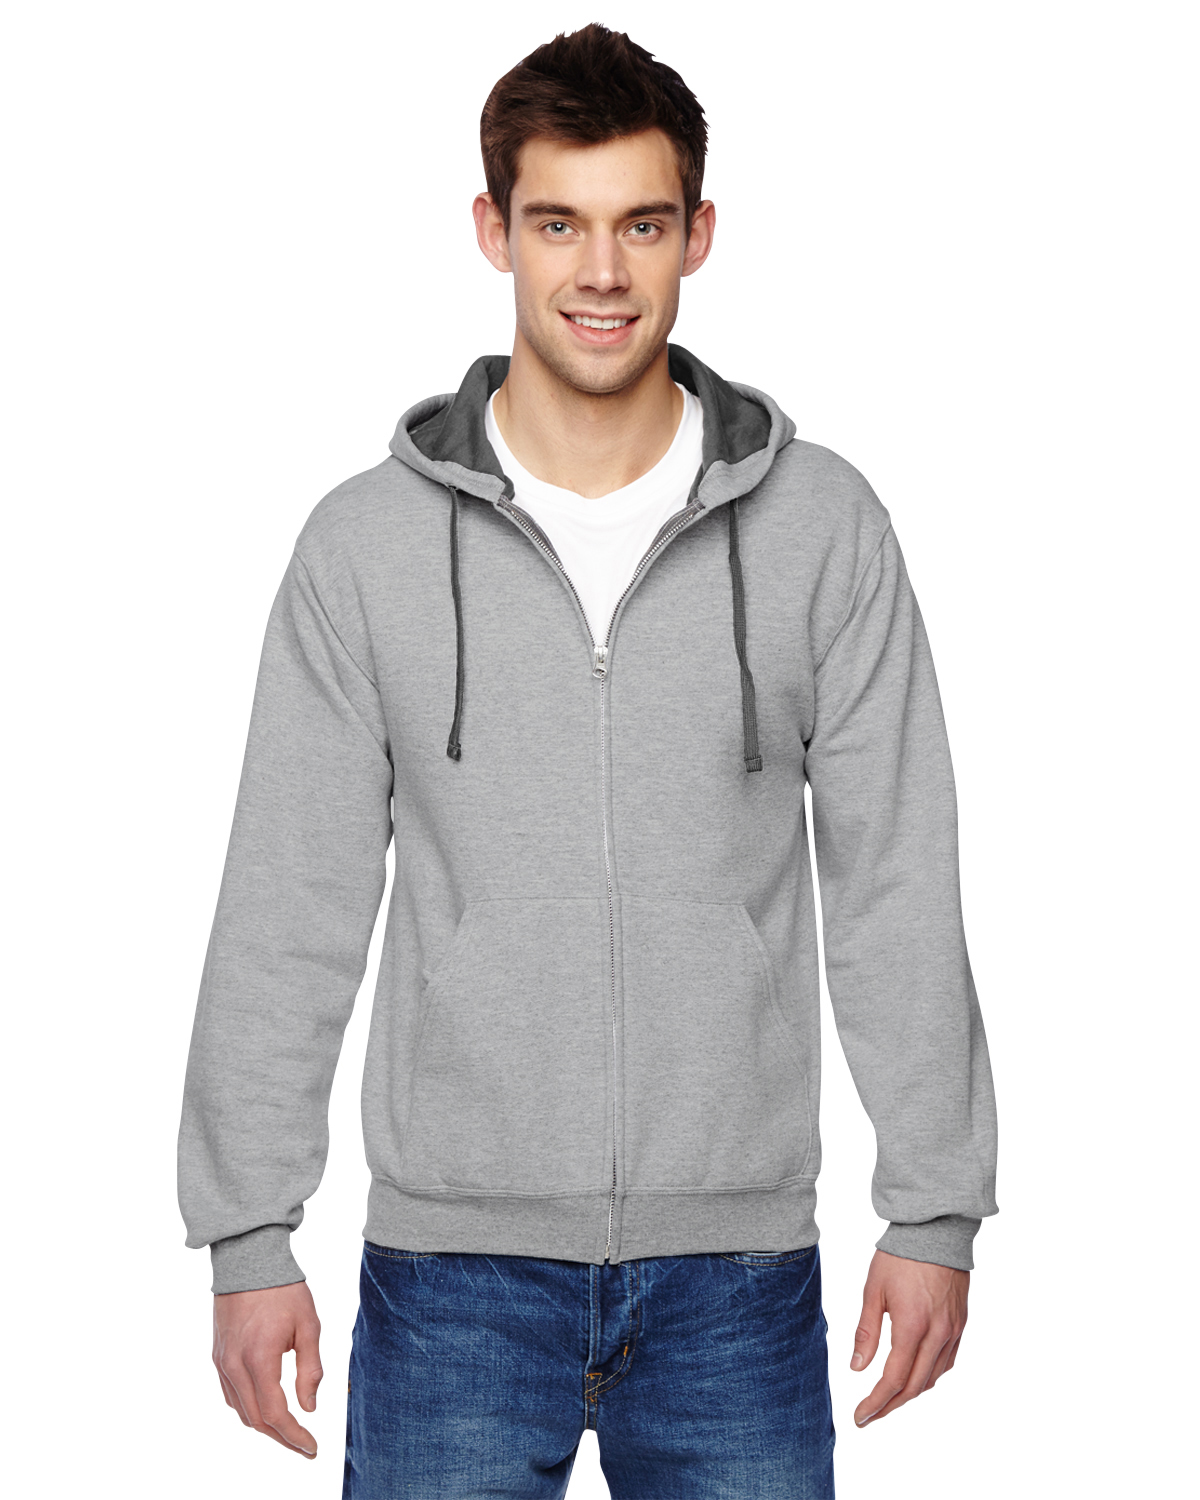 Fruit of the Loom Adult SofSpun® Full-Zip Hooded Sweatshirt Hoodie S-3XL SF73R